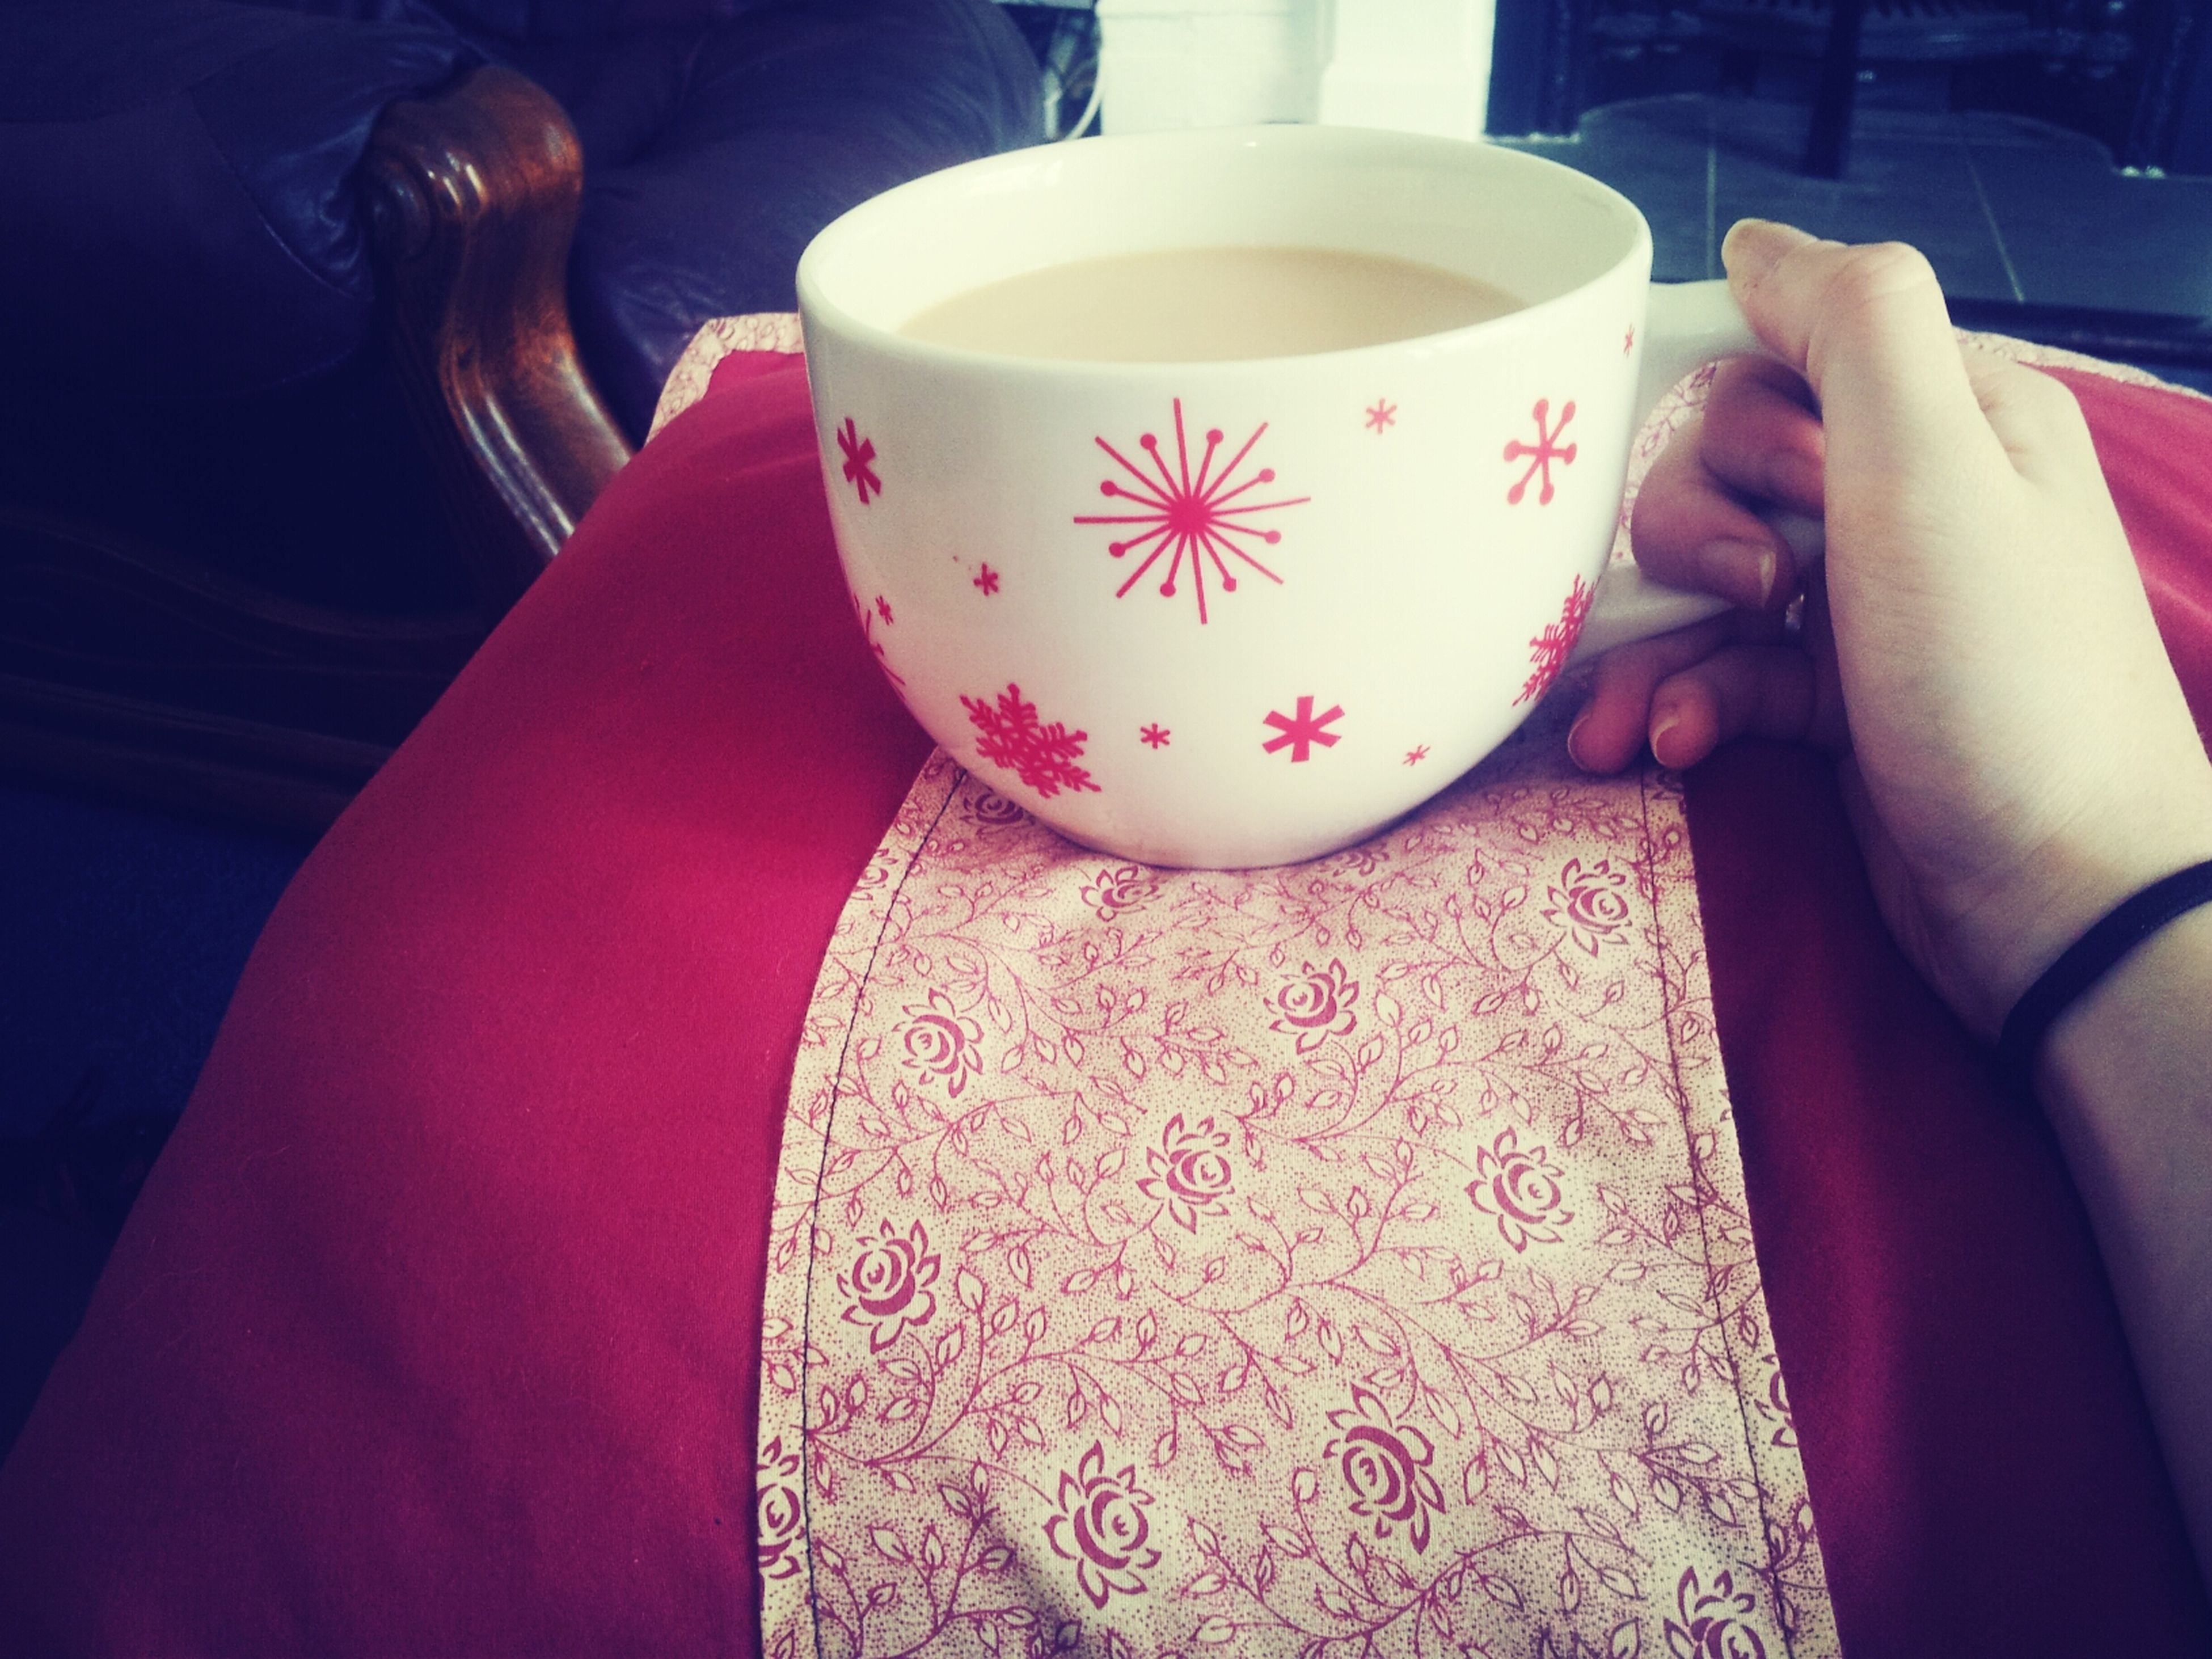 indoors, table, high angle view, floral pattern, creativity, art, home interior, art and craft, food and drink, person, animal representation, decoration, lifestyles, coffee cup, design, childhood, still life